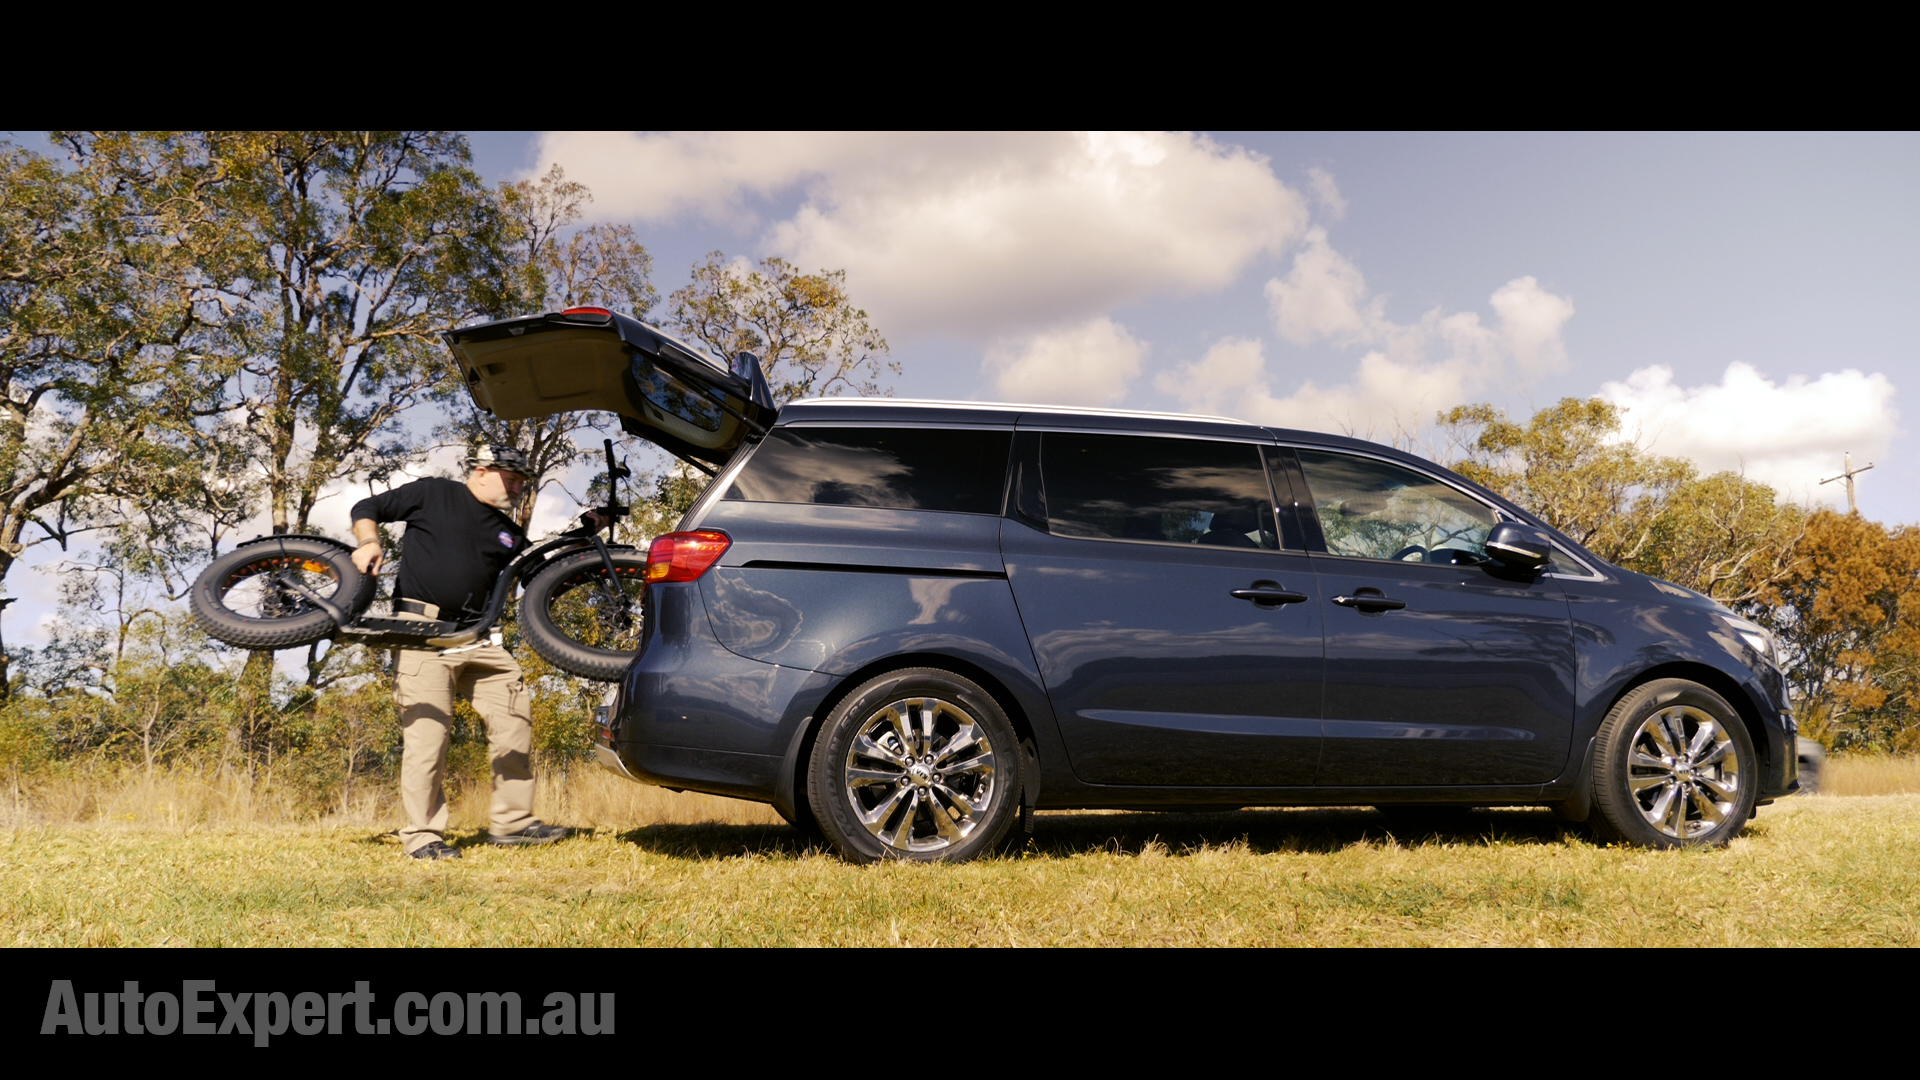 Kia Carnival - people movers are not as sexy as SUVs, but they would often be w-a-y more practical and versatile